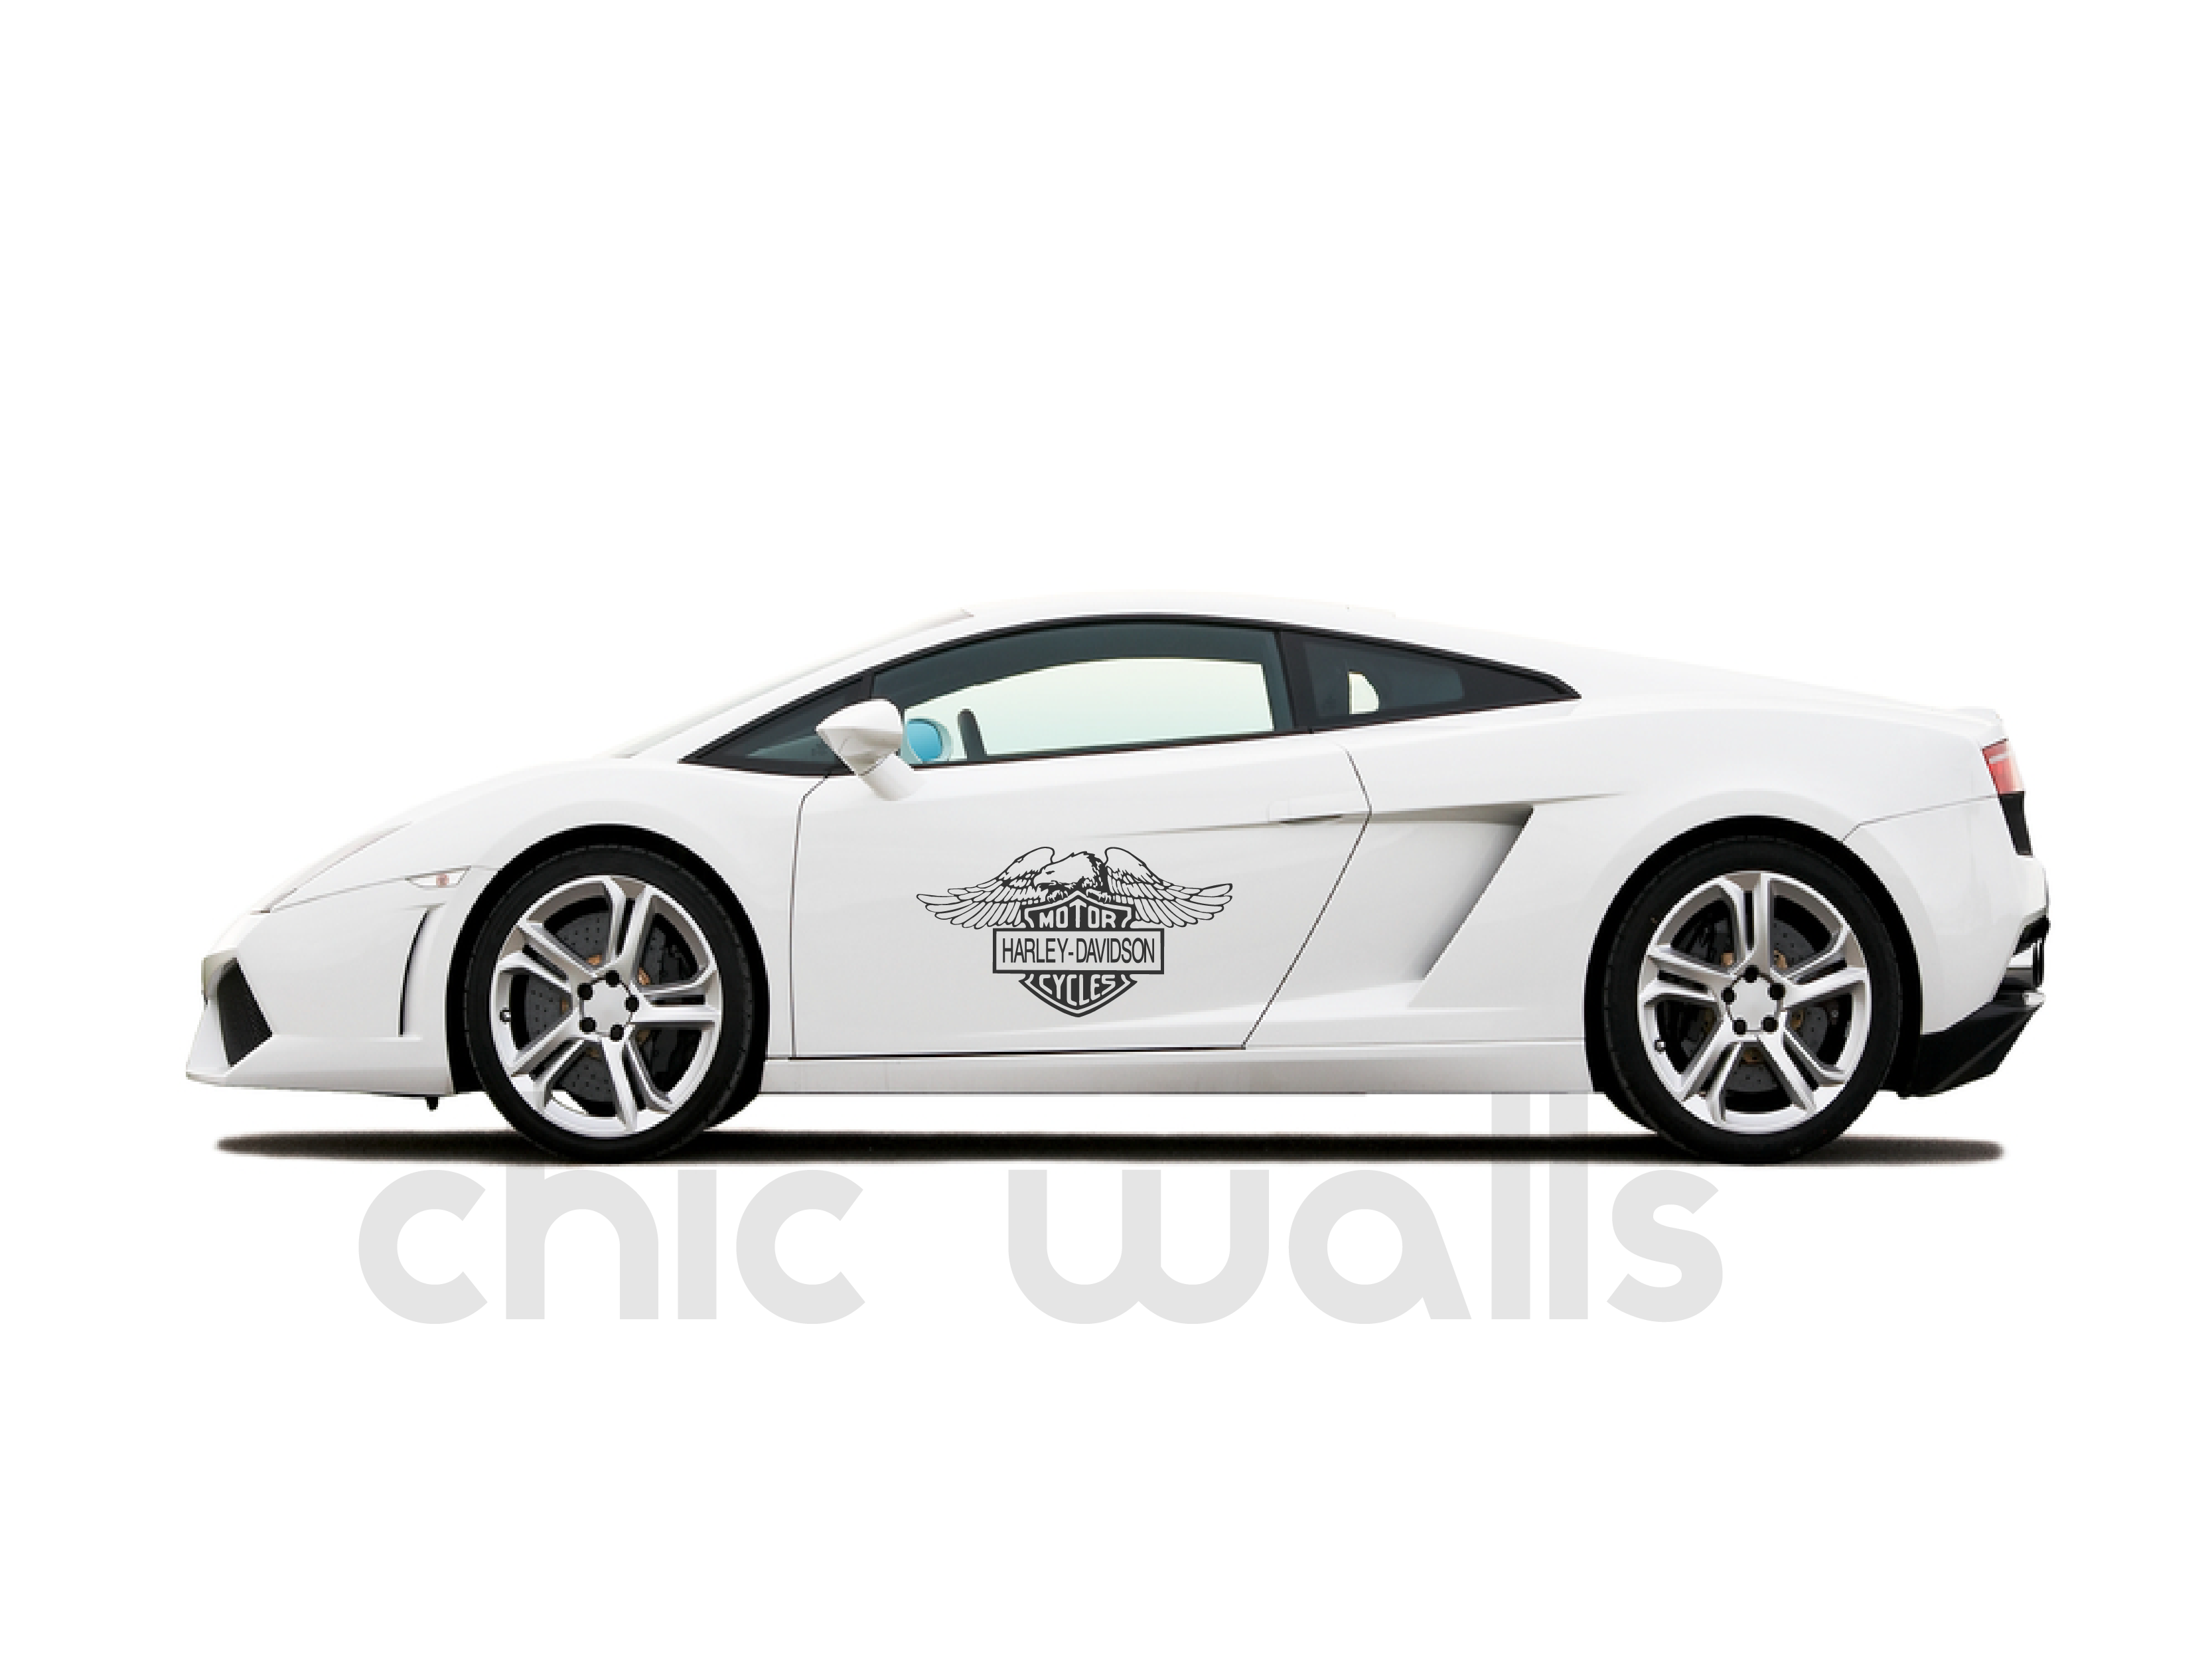 Pin By Chic Walls On Auto Decal Car Decals Vinyl Car Decals Harley Davidson [ 2500 x 3333 Pixel ]